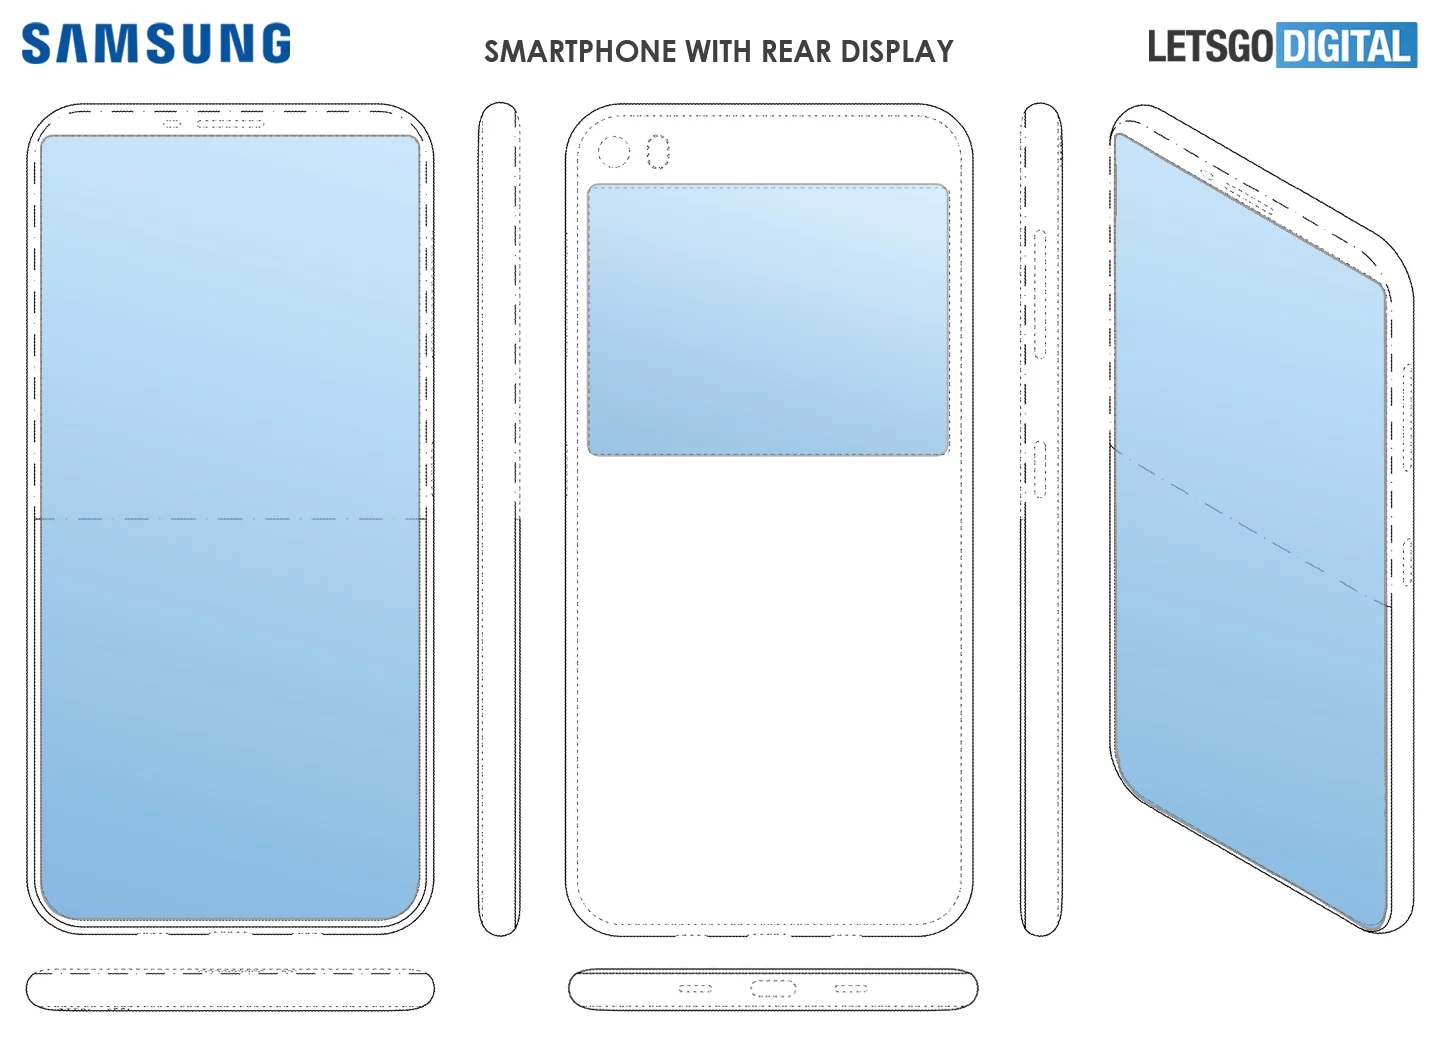 Samsung works on a dual display device